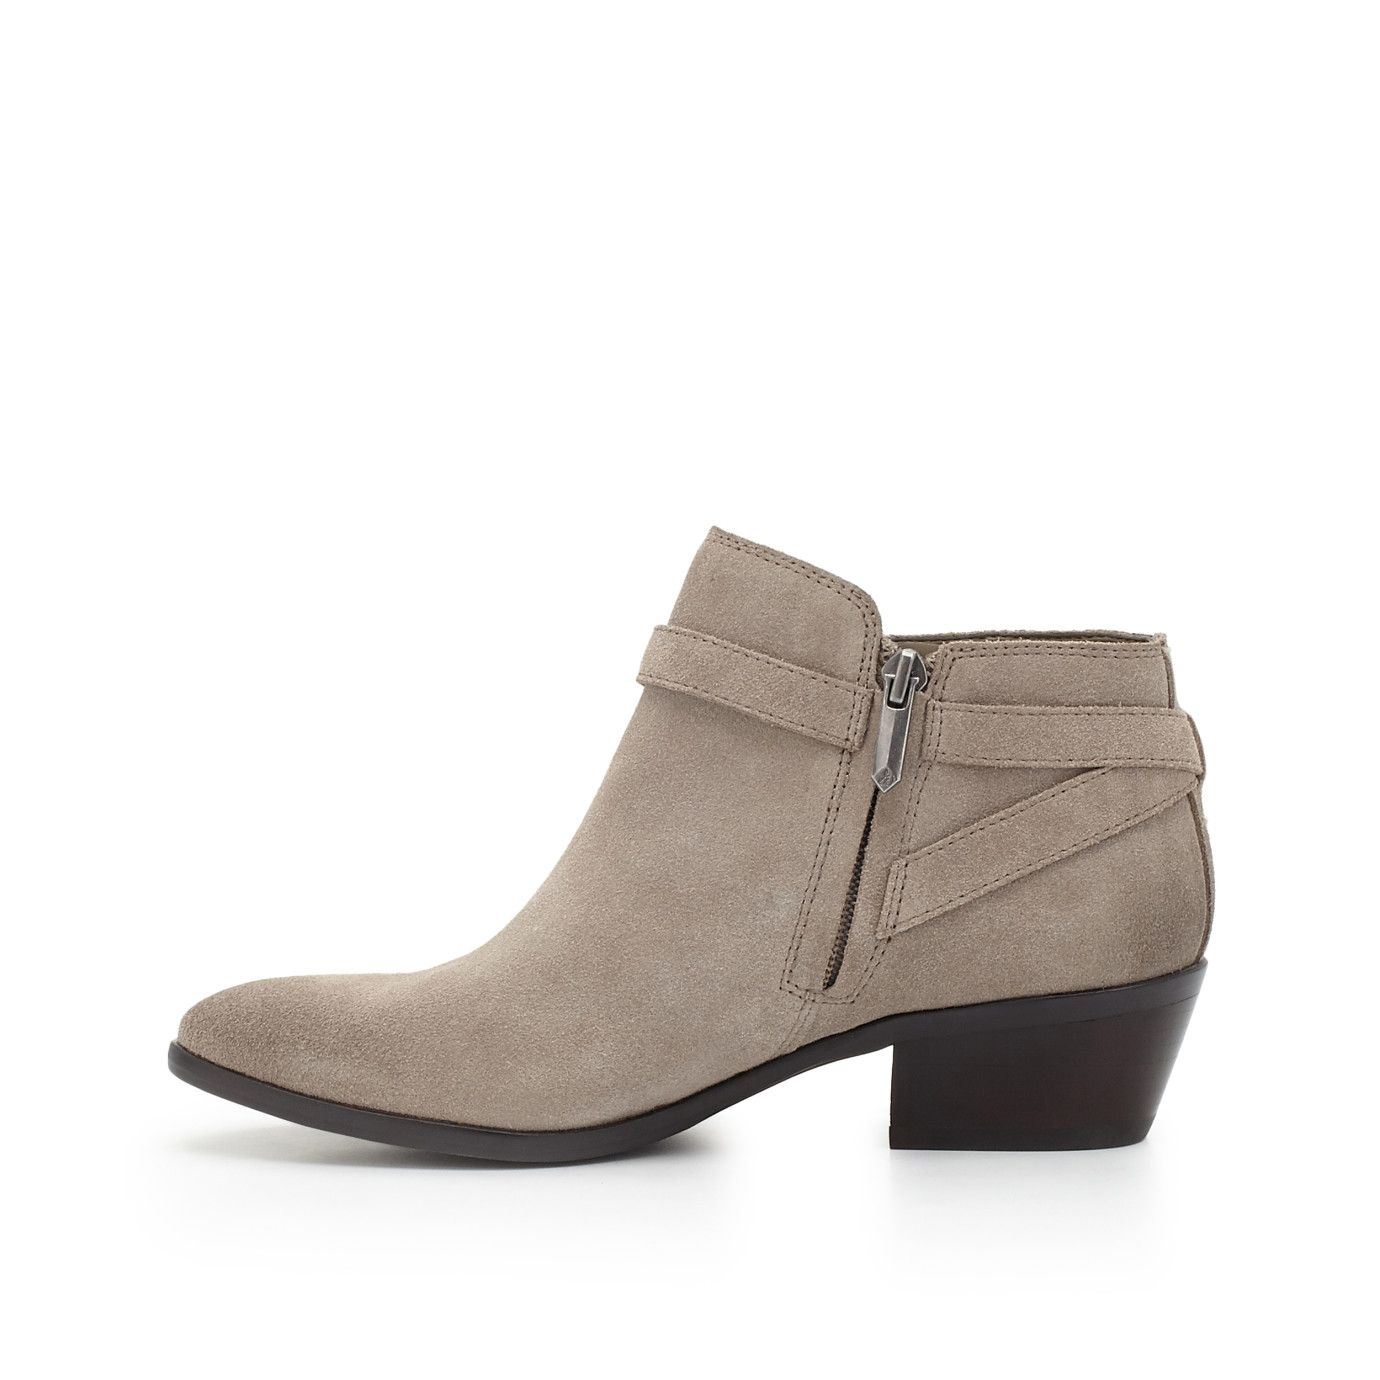 42cbad1a8 Pirro Ankle Bootie by Sam Edelman - Putty Suede